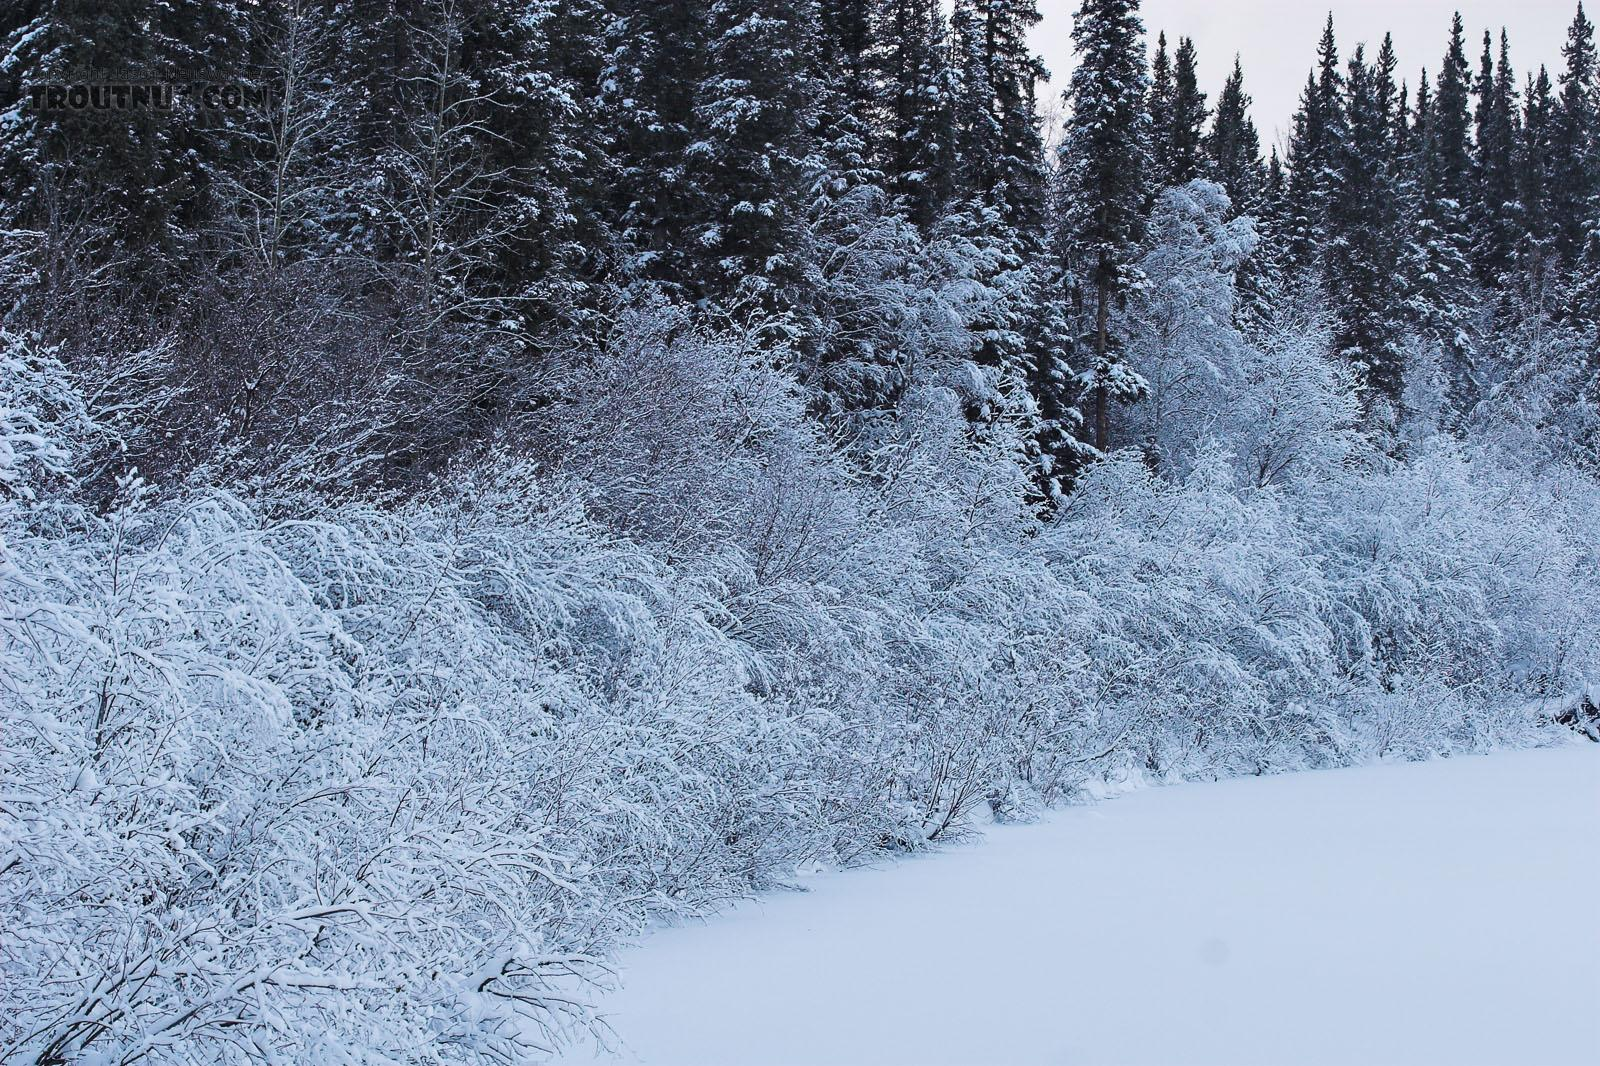 A thick layer of ice clings to the branches of low bushes over an Alaskan river in the winter. From the Chena River in Alaska.